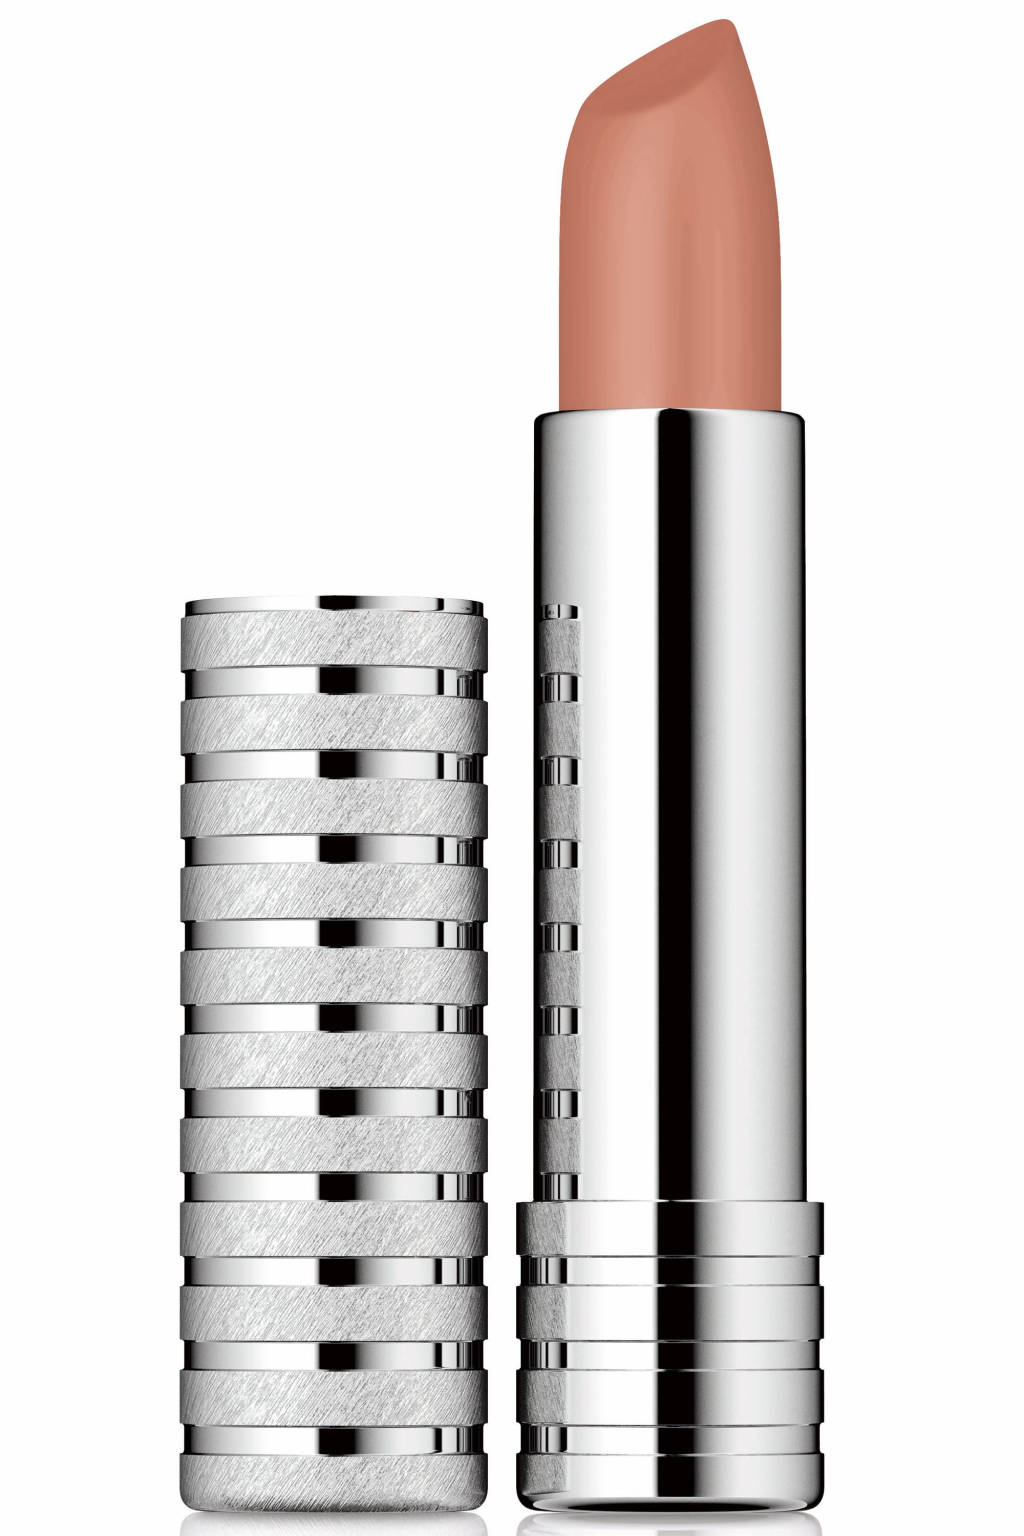 hbz-fall-lipstick-preview-nudes-clinique-lg.jpg